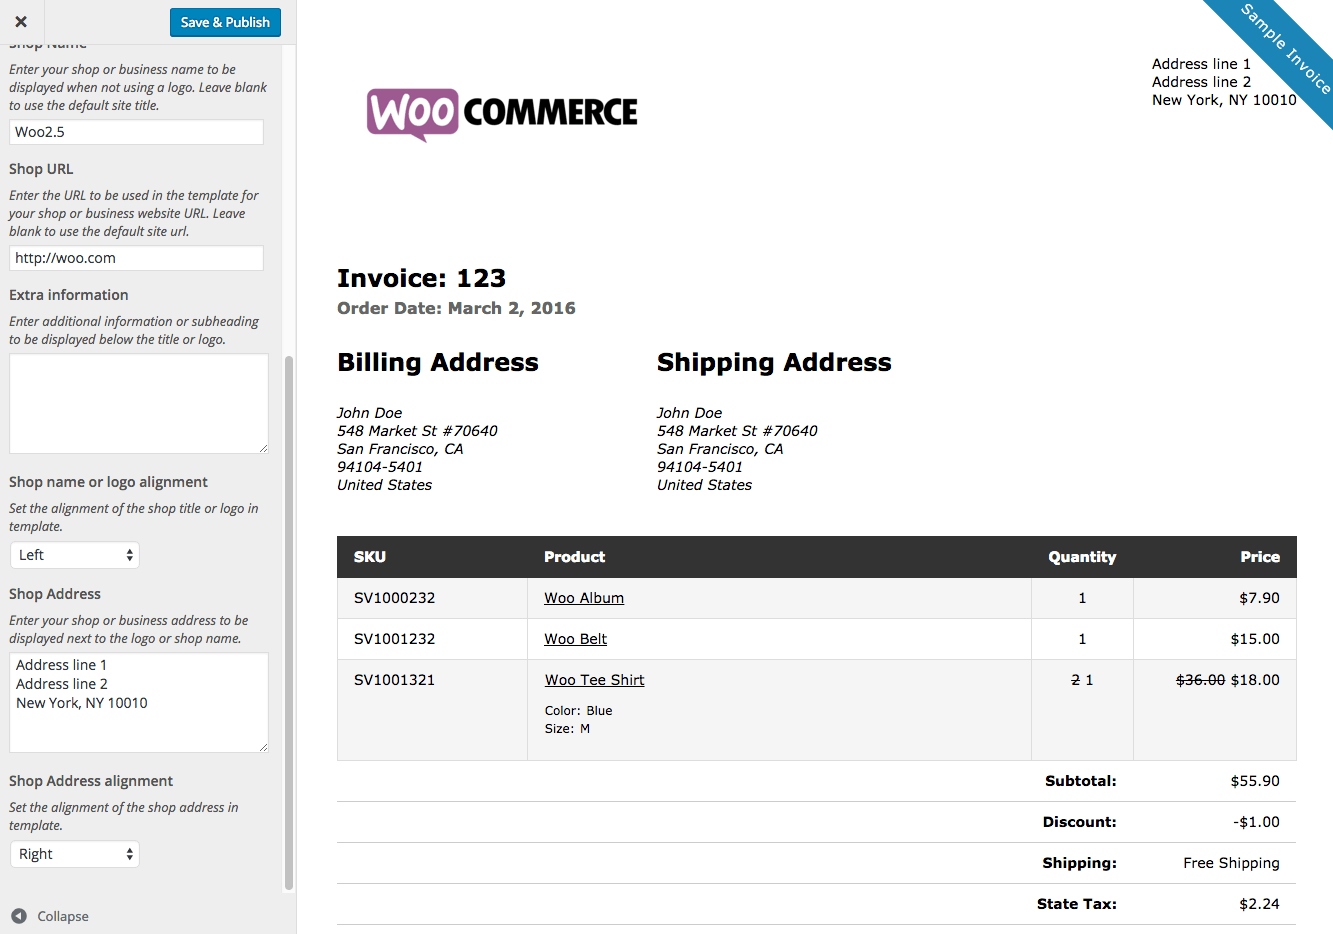 Pigbrotherus  Pleasing Woocommerce Print Invoices Amp Packing Lists  Woocommerce Docs With Exciting Woocommerce Print Invoices  Packing Lists Customizer With Astounding Fuel Receipt Template Also Create Receipt Online In Addition How To Scan Receipts And Receipt For As Well As Receipts And Payments Accounts Template Additionally Miami Dade Local Business Tax Receipt Application Form From Docswoocommercecom With Pigbrotherus  Exciting Woocommerce Print Invoices Amp Packing Lists  Woocommerce Docs With Astounding Woocommerce Print Invoices  Packing Lists Customizer And Pleasing Fuel Receipt Template Also Create Receipt Online In Addition How To Scan Receipts From Docswoocommercecom